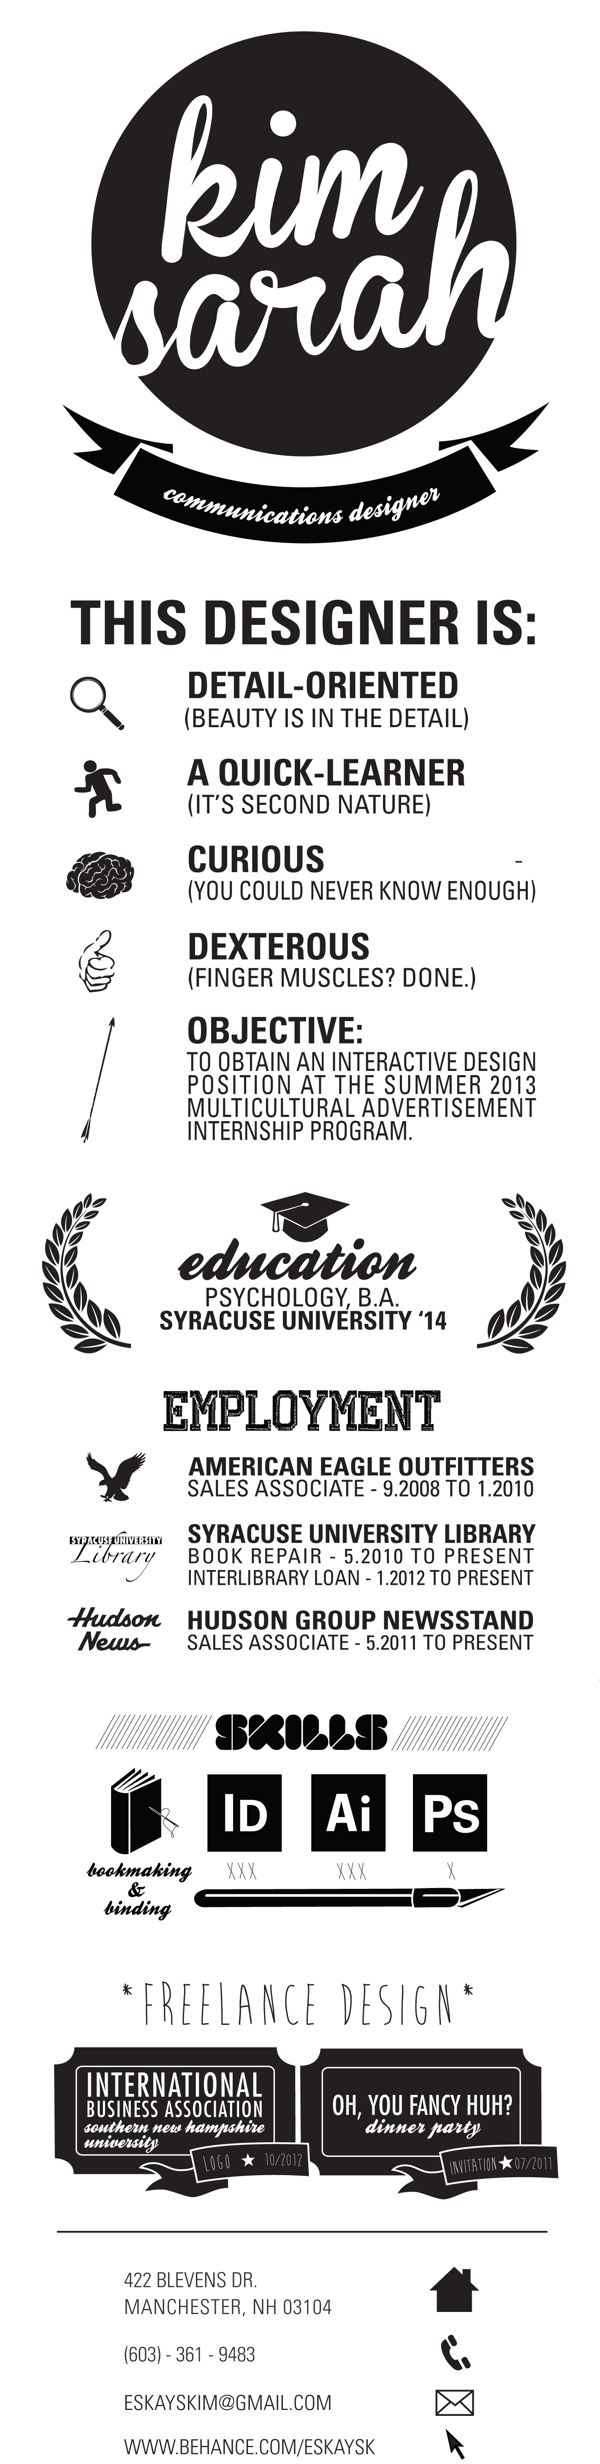 Picnictoimpeachus  Terrific  Ideas About Infographic Resume On Pinterest  My Portfolio  With Extraordinary  Ideas About Infographic Resume On Pinterest  My Portfolio Resume And Resume Design With Nice Resume Soft Skills Also How To Include References In Resume In Addition New Graduate Nursing Resume And Resume Accent Marks As Well As How To Write An Acting Resume Additionally Maintenance Manager Resume From Pinterestcom With Picnictoimpeachus  Extraordinary  Ideas About Infographic Resume On Pinterest  My Portfolio  With Nice  Ideas About Infographic Resume On Pinterest  My Portfolio Resume And Resume Design And Terrific Resume Soft Skills Also How To Include References In Resume In Addition New Graduate Nursing Resume From Pinterestcom